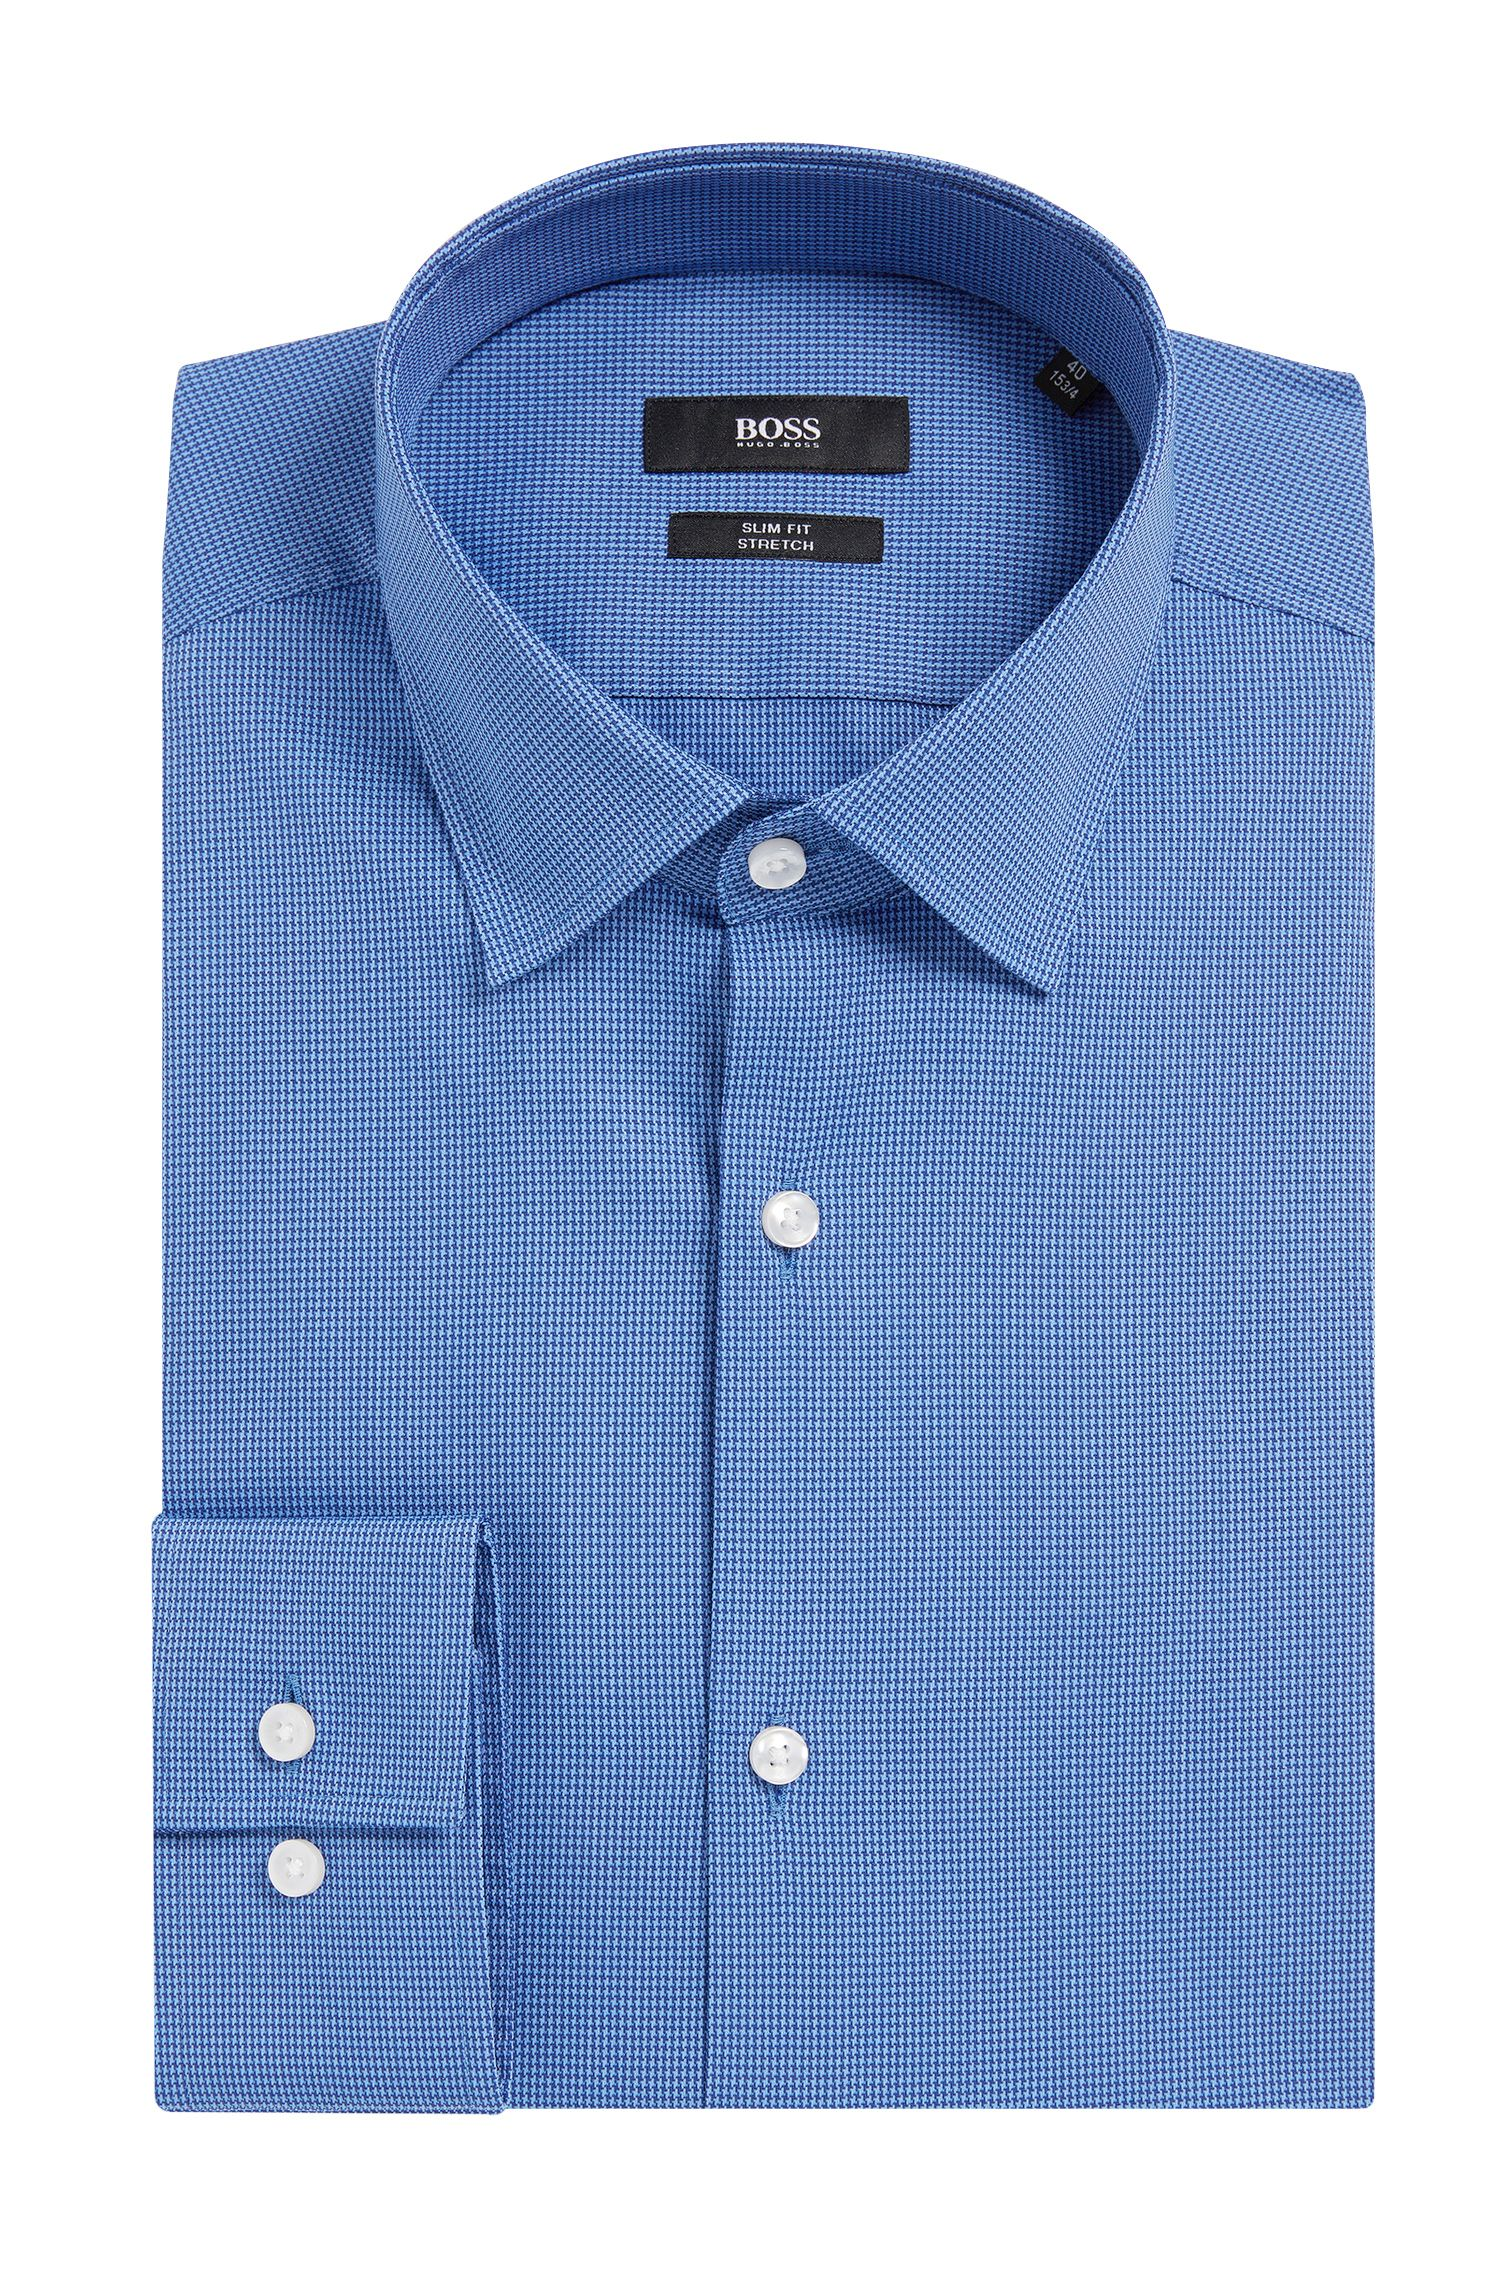 Houndstooth Stretch Cotton Dress Shirt, Slim Fit | Jenno